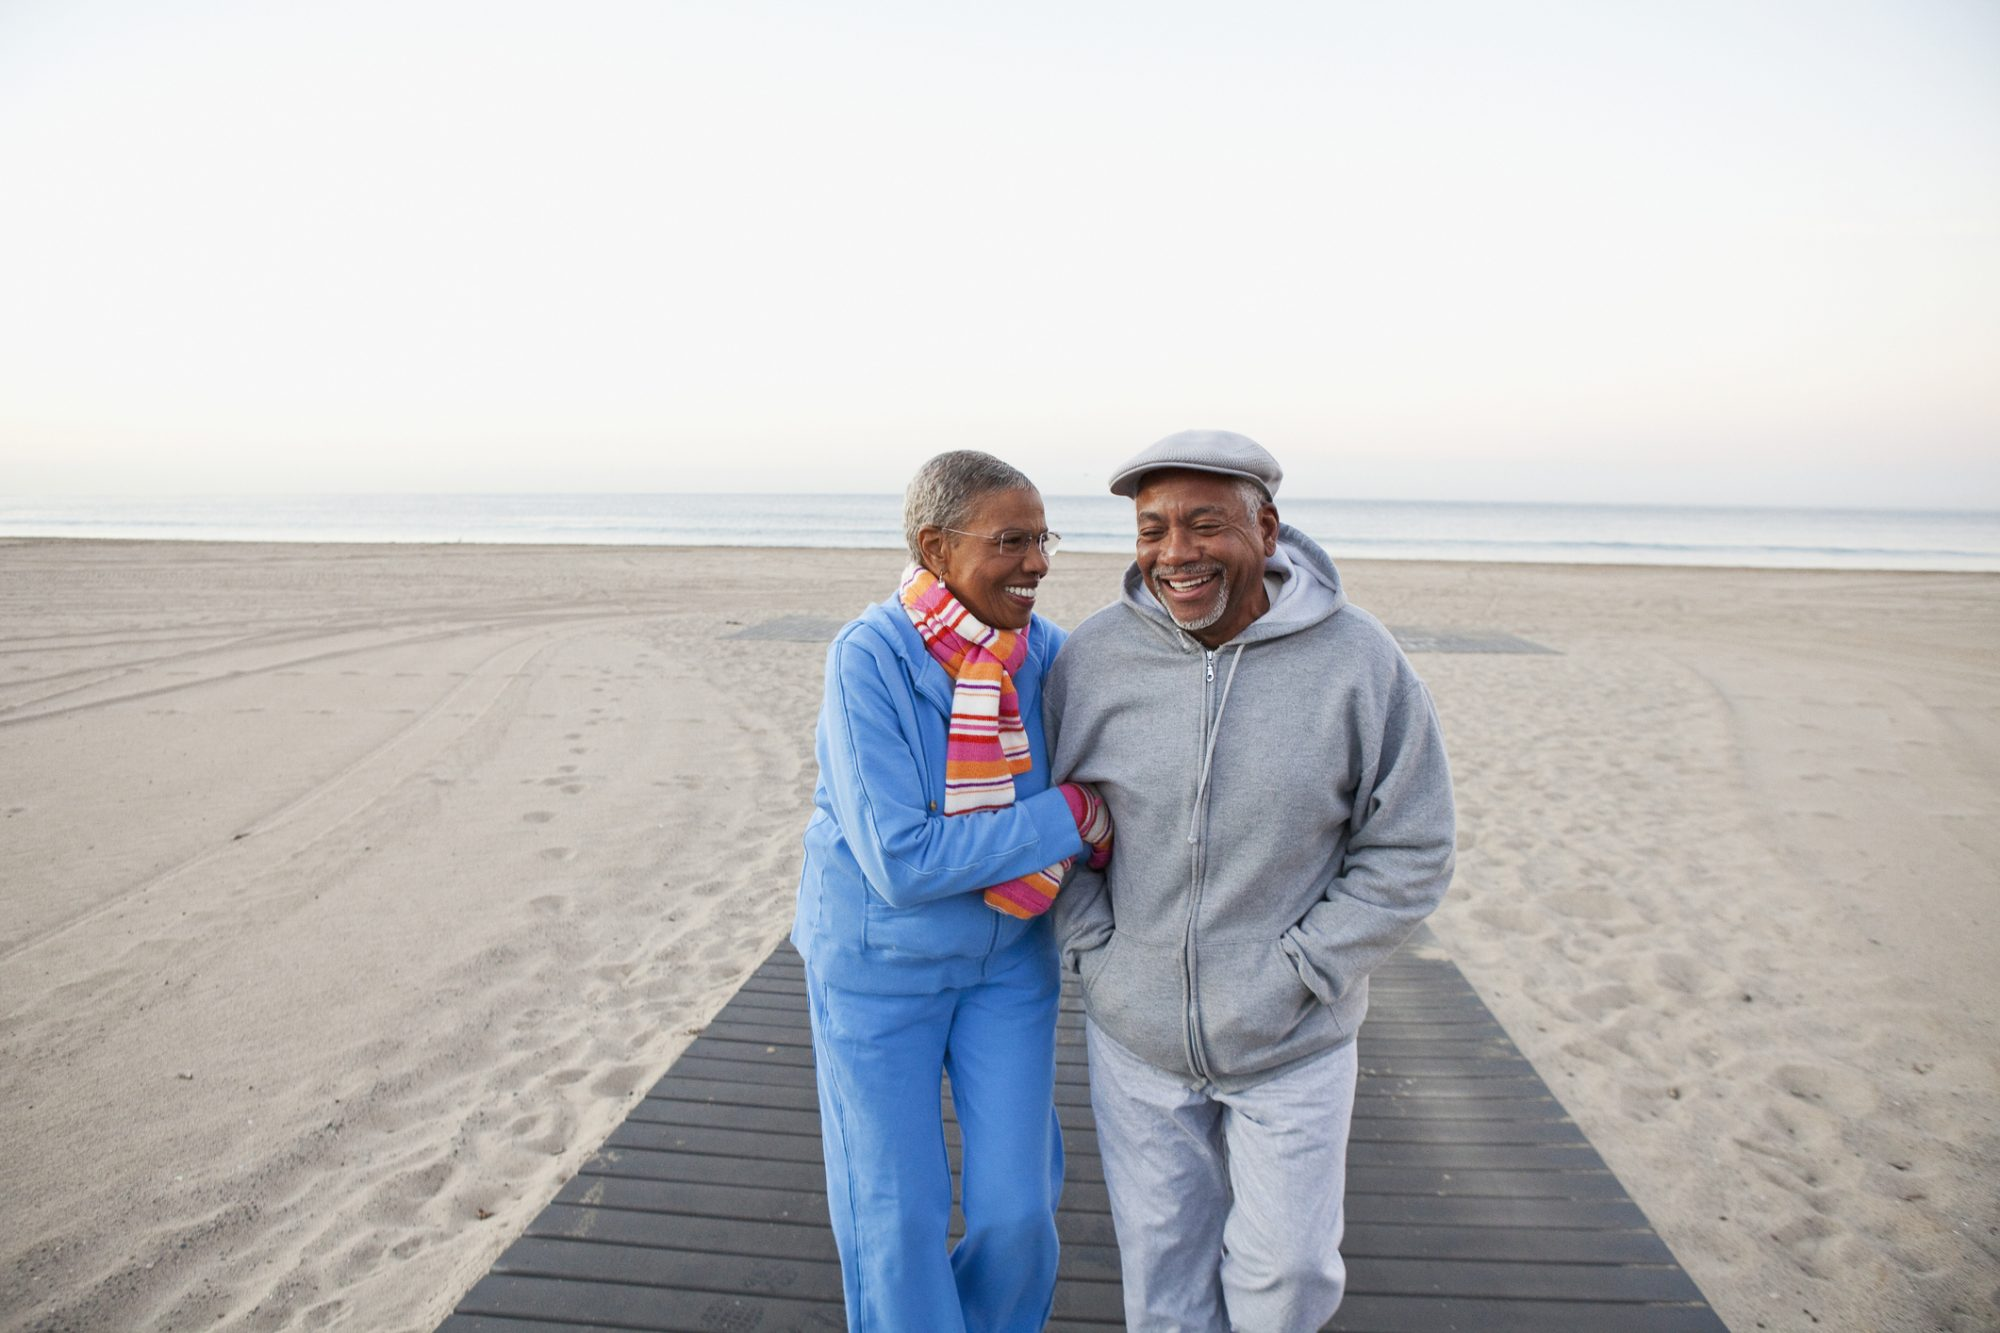 Retired Couple Walking on the Beach